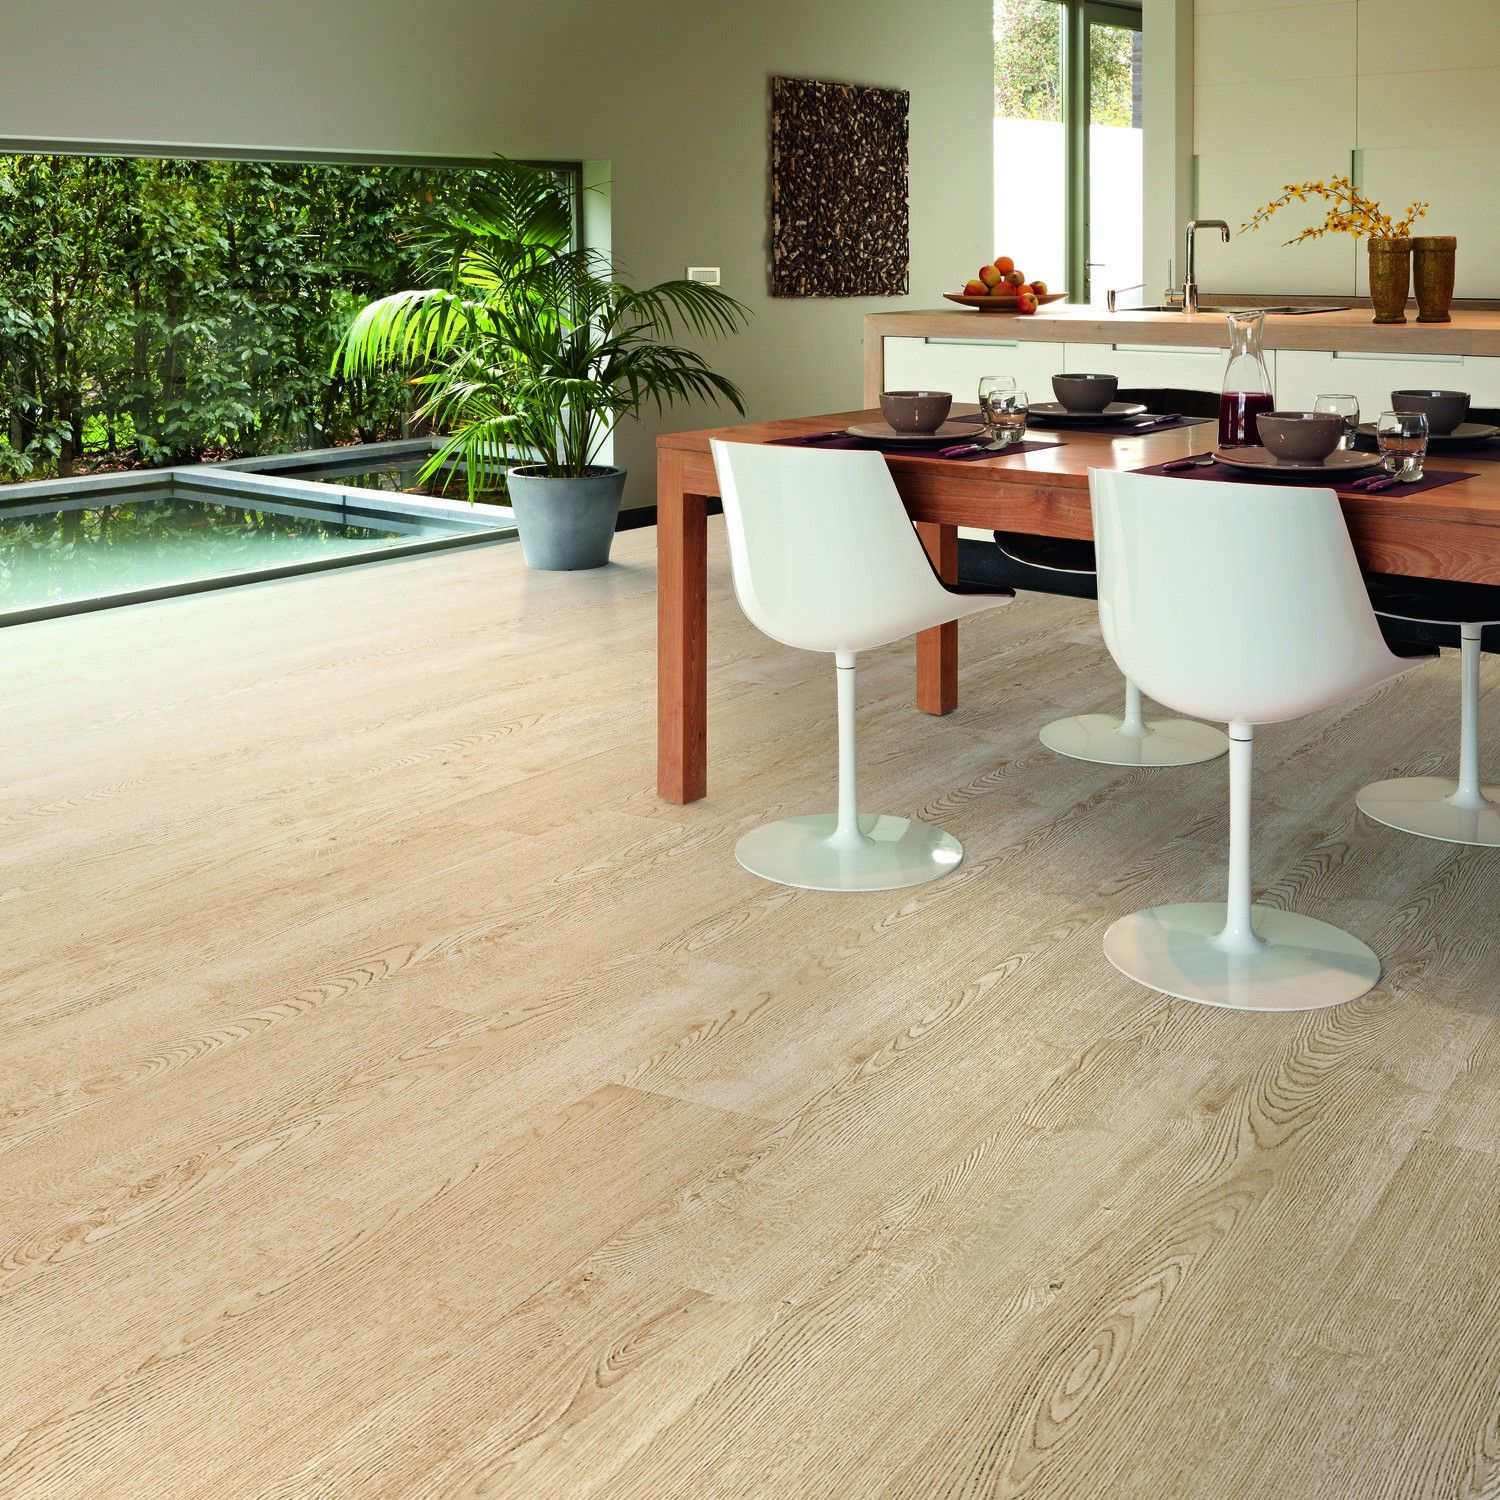 Best Laminate Flooring For Kitchen: The Best Flooring For A Family Home